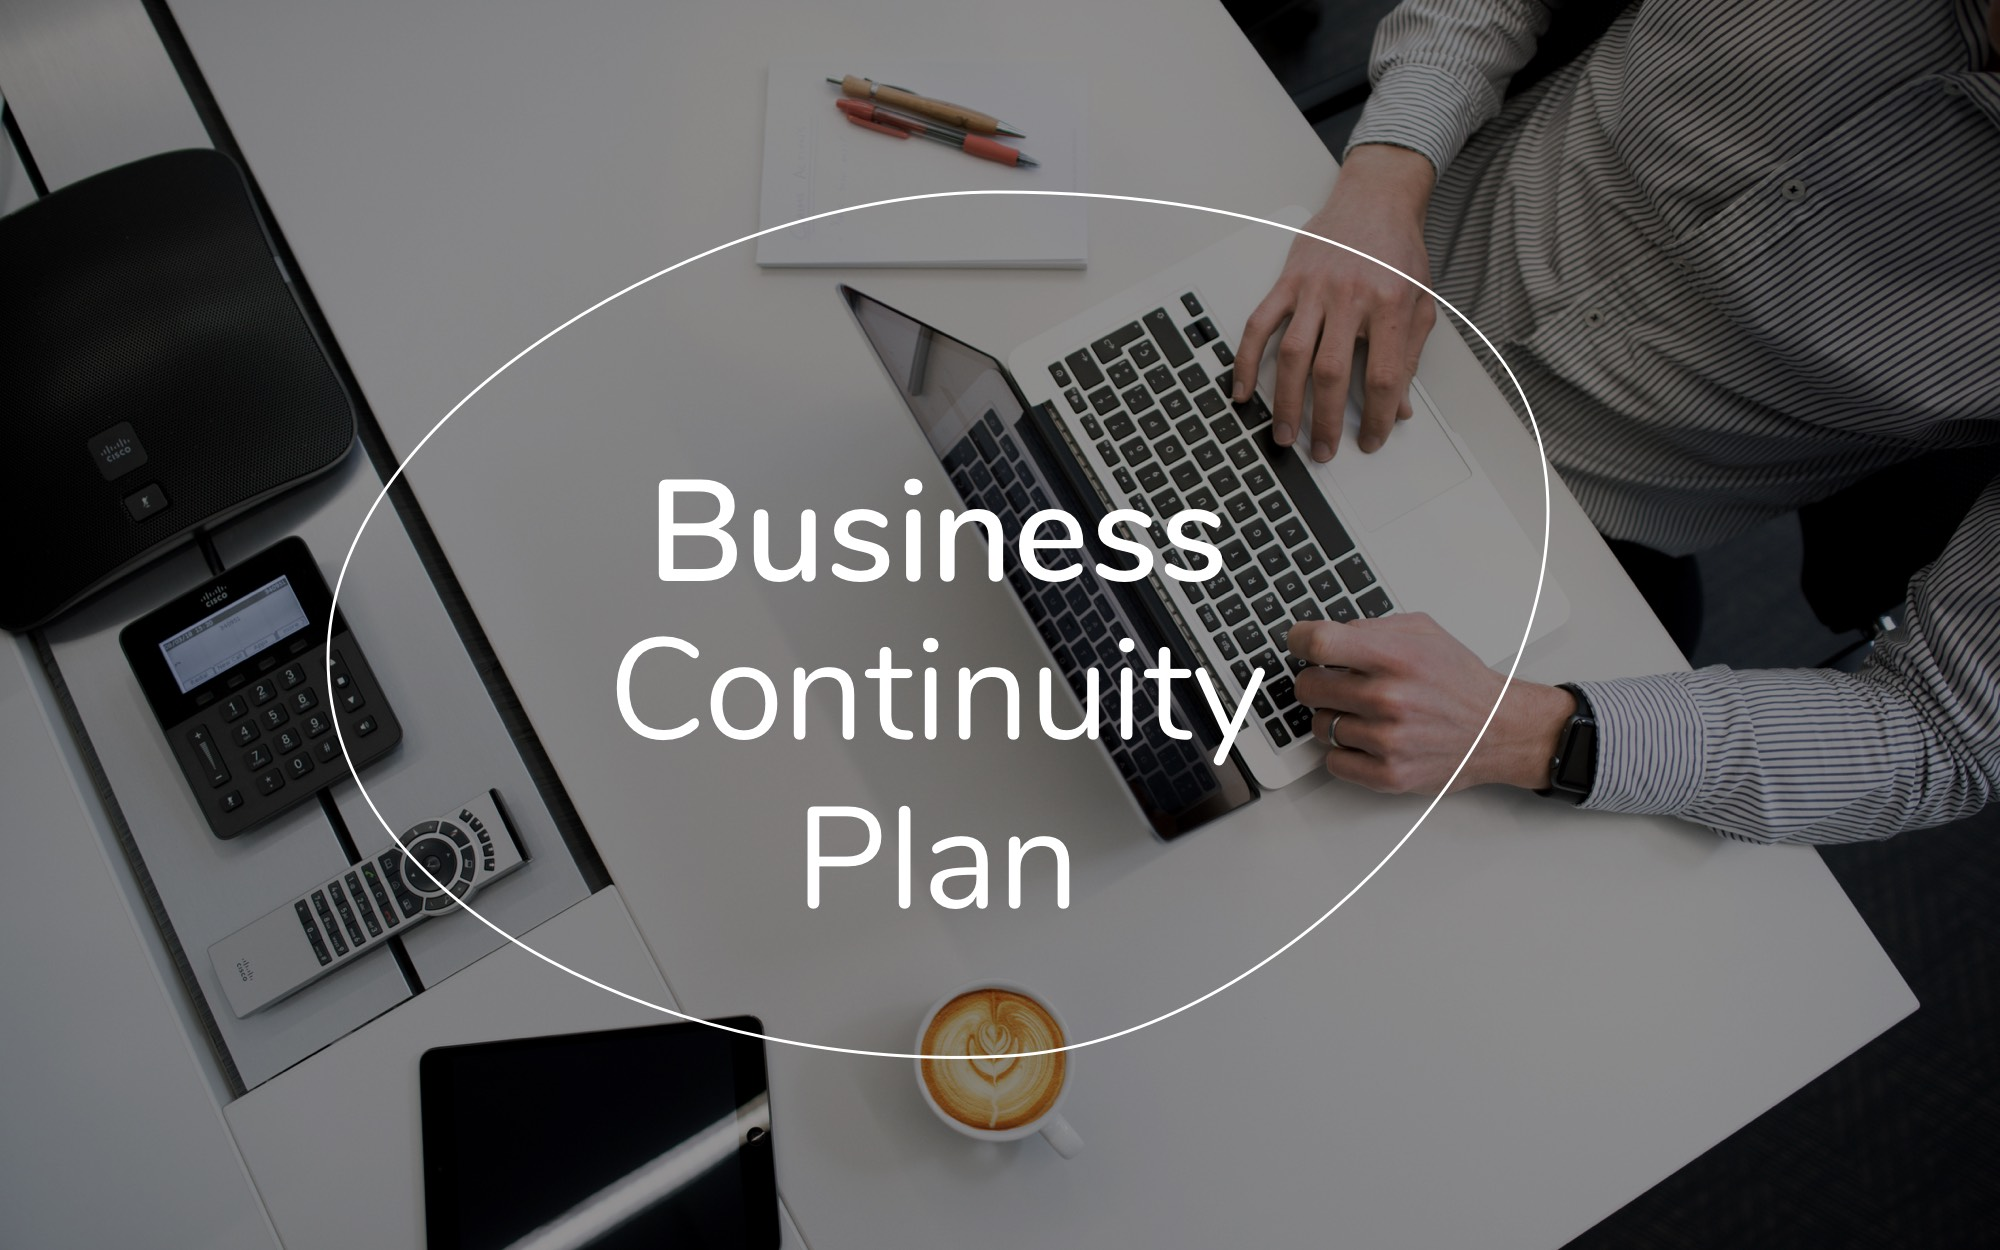 Business continuity plan template free pdf ppt download slidebean business continuity plan template free pdf amp ppt download friedricerecipe Images